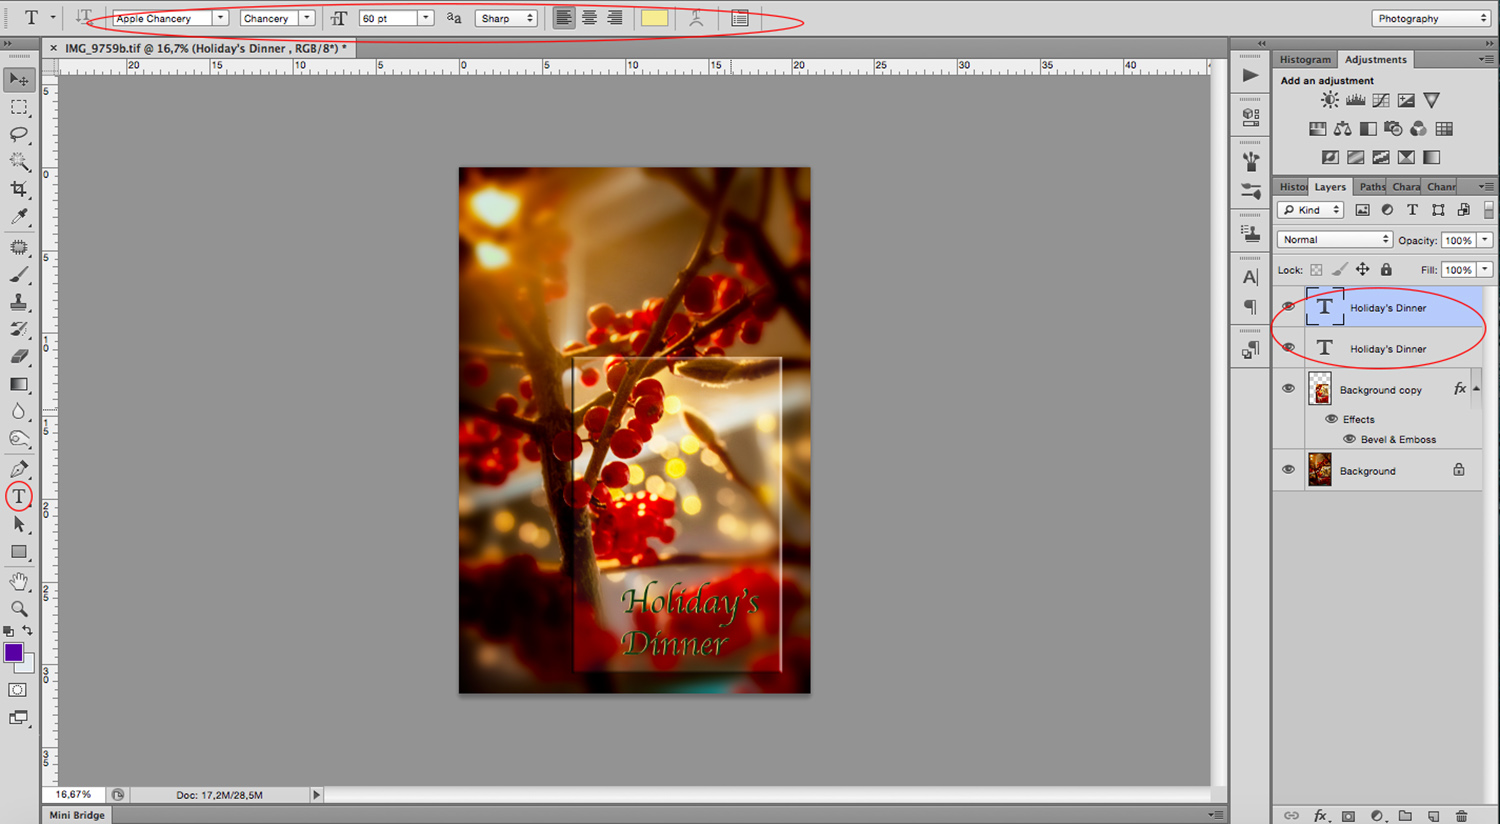 7- How to Make Great Photo Invitations in Photoshop